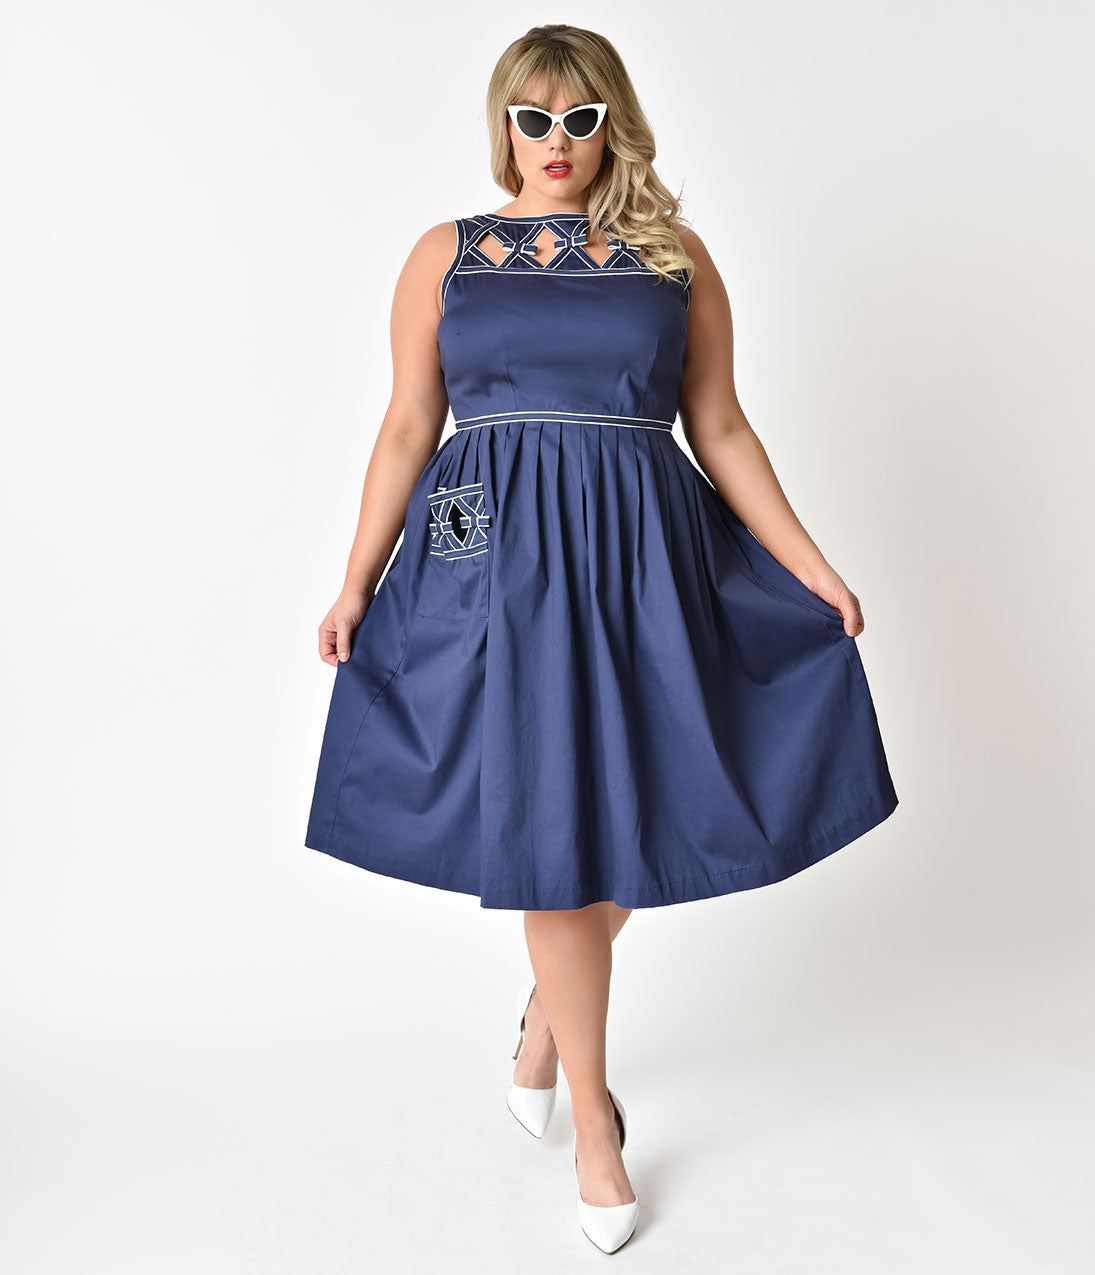 1940s Plus Size Fashion: Style Advice from 1940s to Today Unique Vintage Plus Size 1940S Style Navy Blue Nautical Weave Lakewood Dress $63.00 AT vintagedancer.com